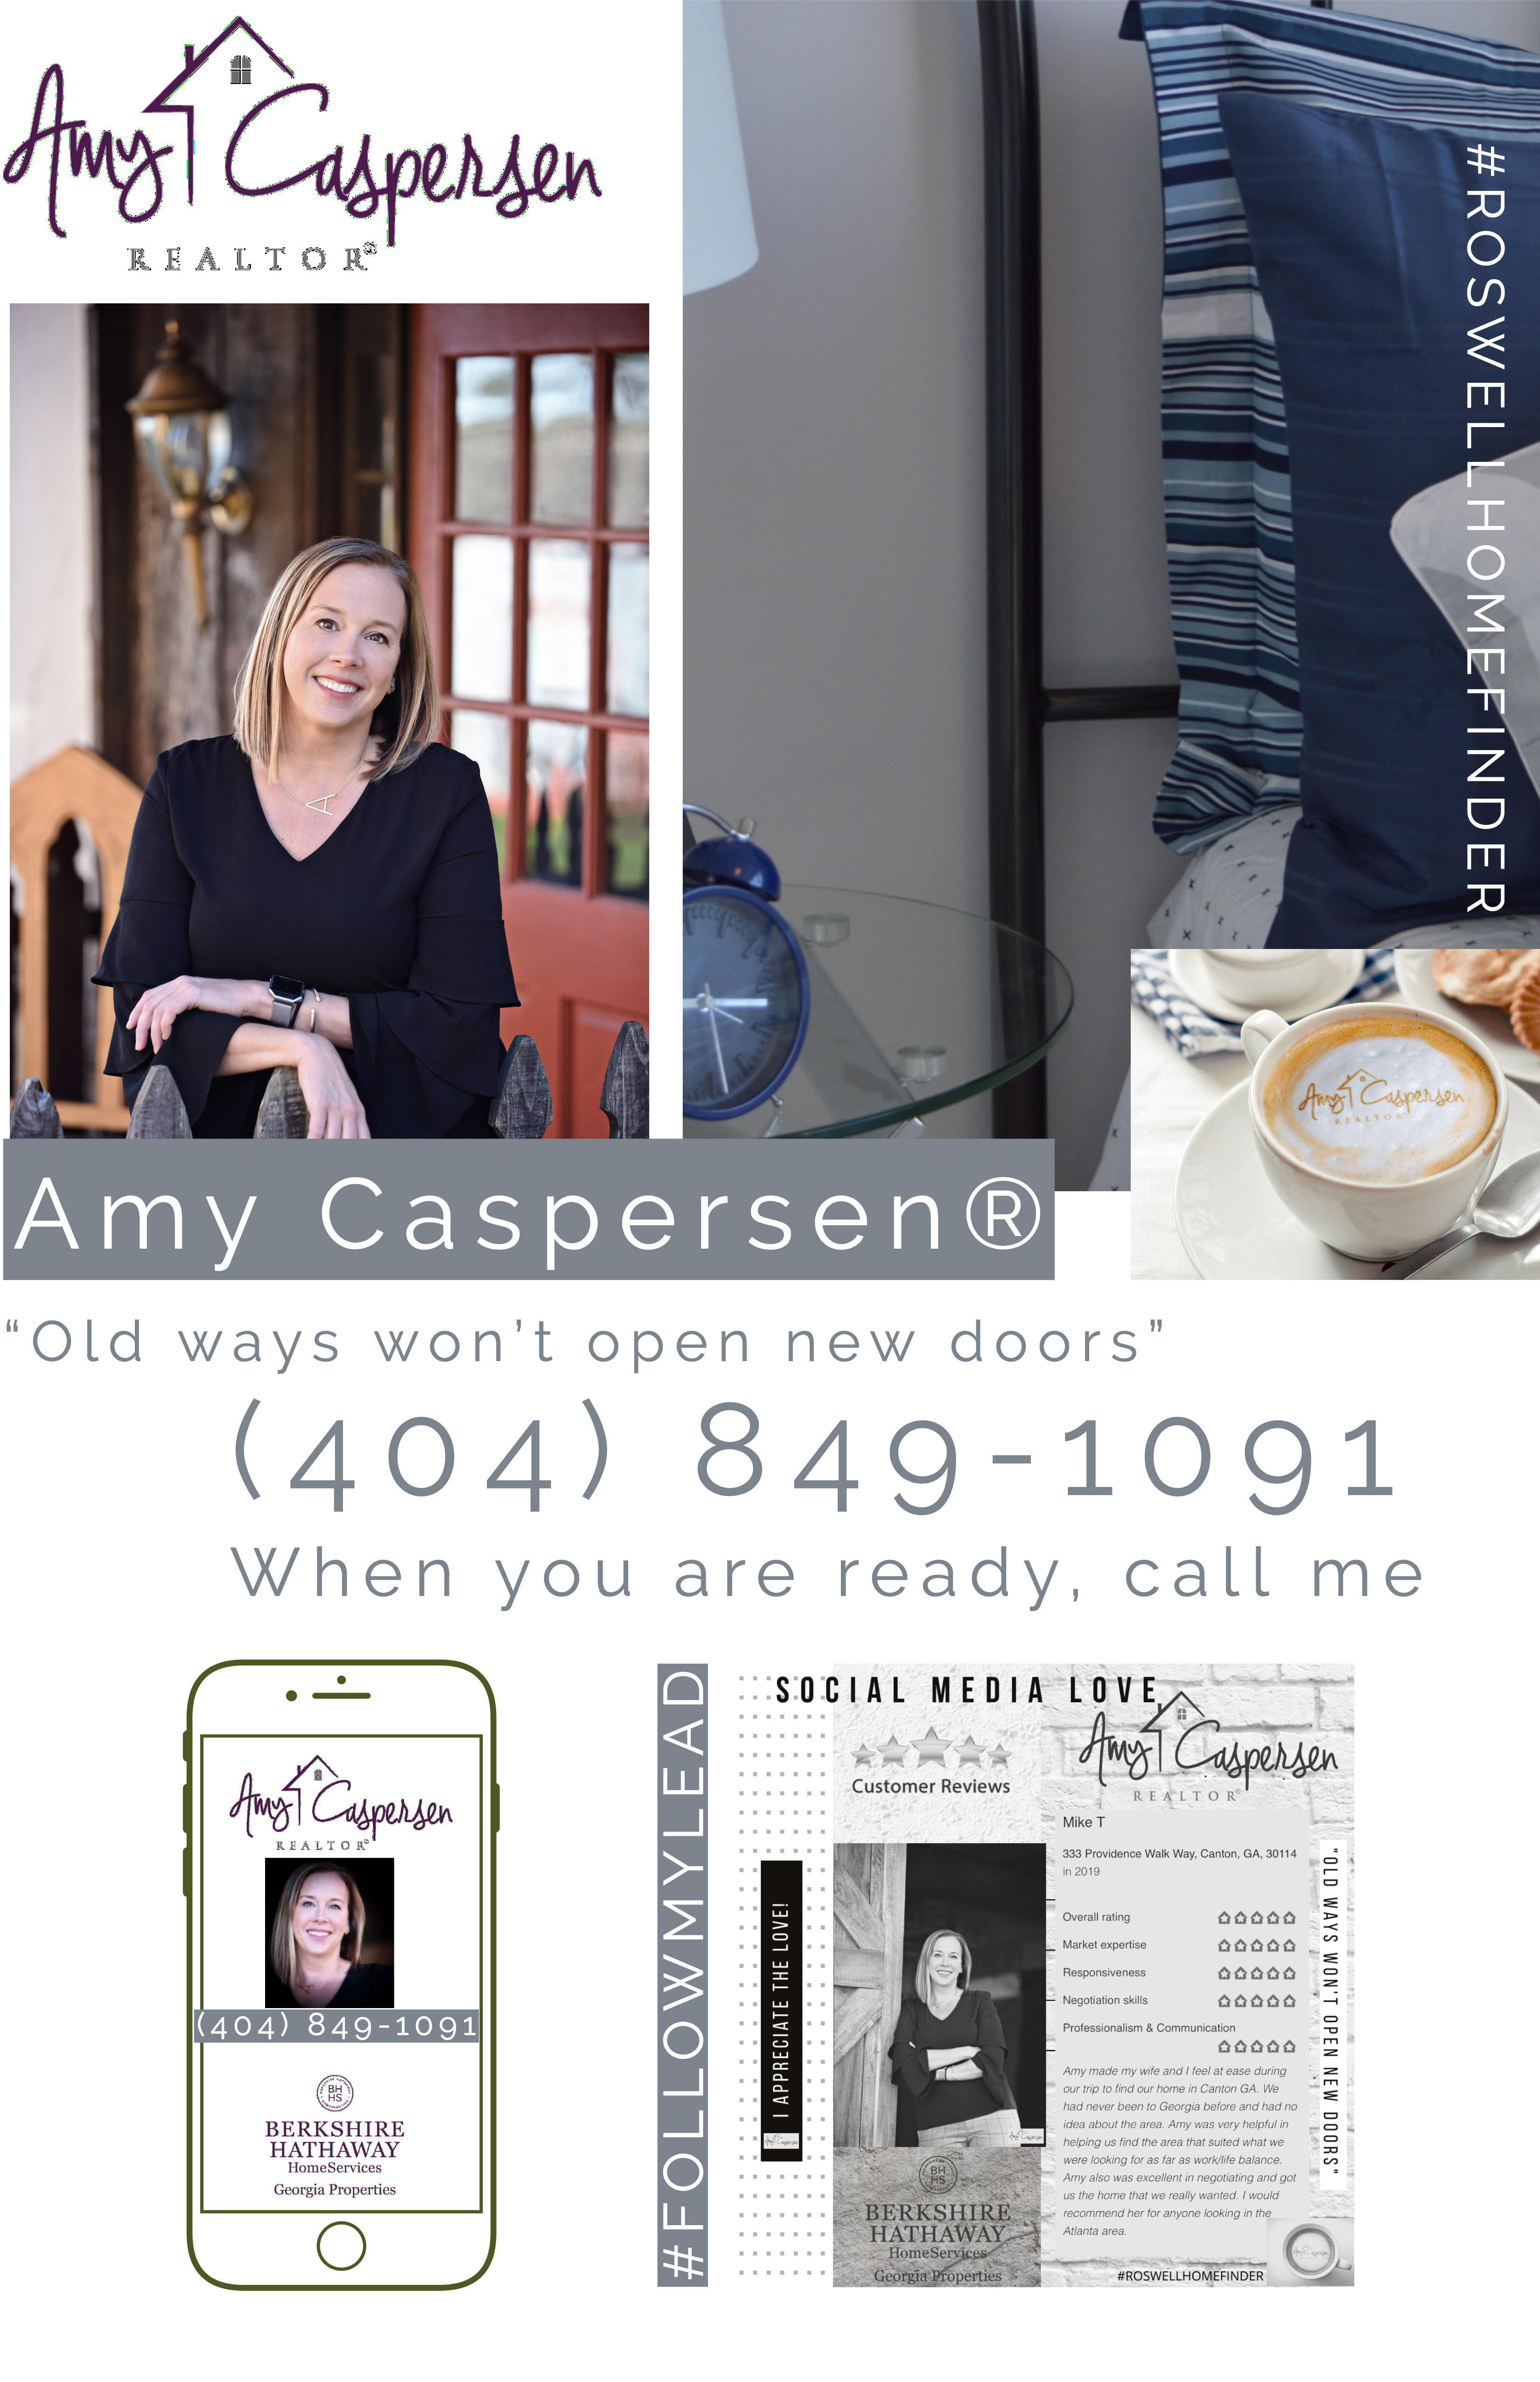 Amy Caspersen roswell and East Cobb Real Estate Agent IG